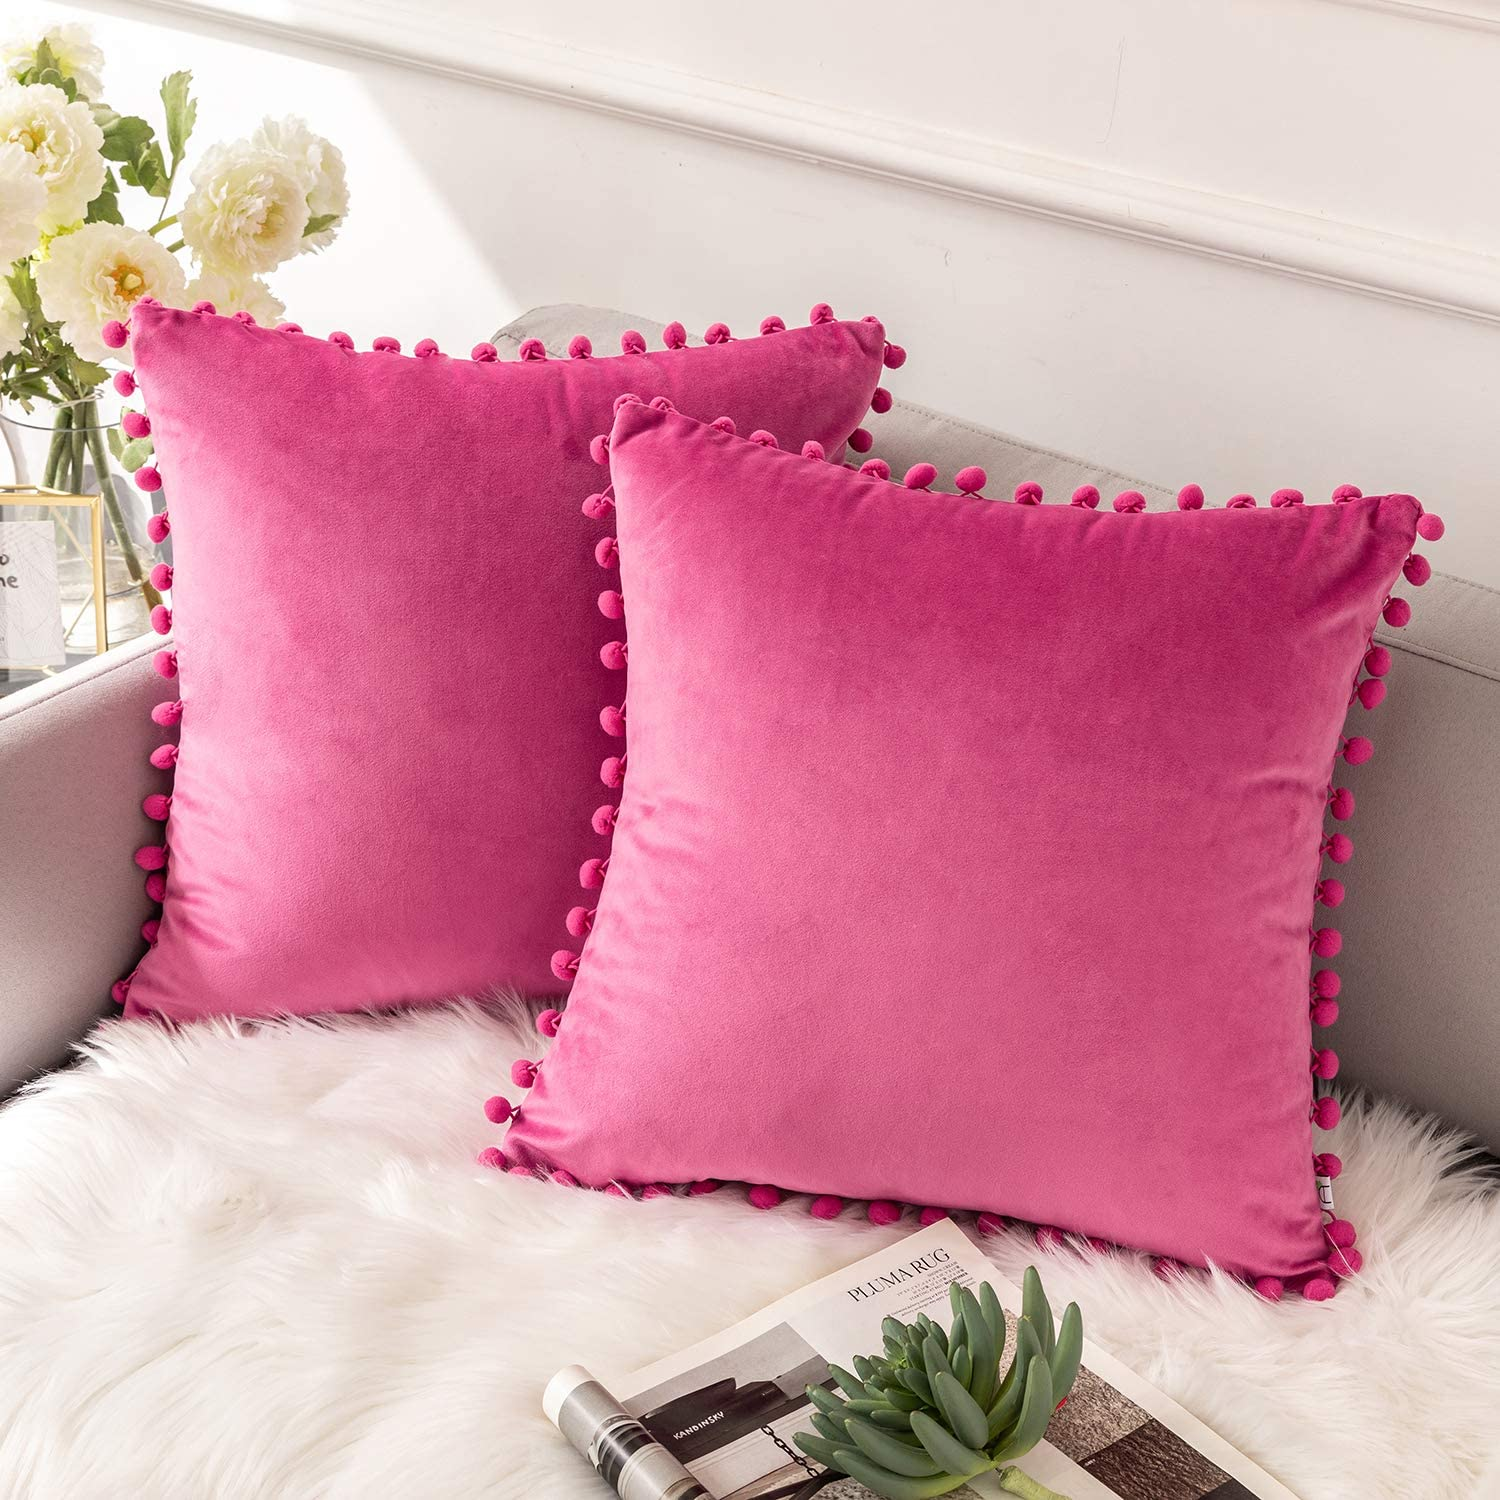 Ashler Decorative Throw Pillow Covers with Pom Poms Soft Particles Velvet Solid Cushion Covers 18 X 18 for Couch Bedroom Car, Pack of 2, Pink